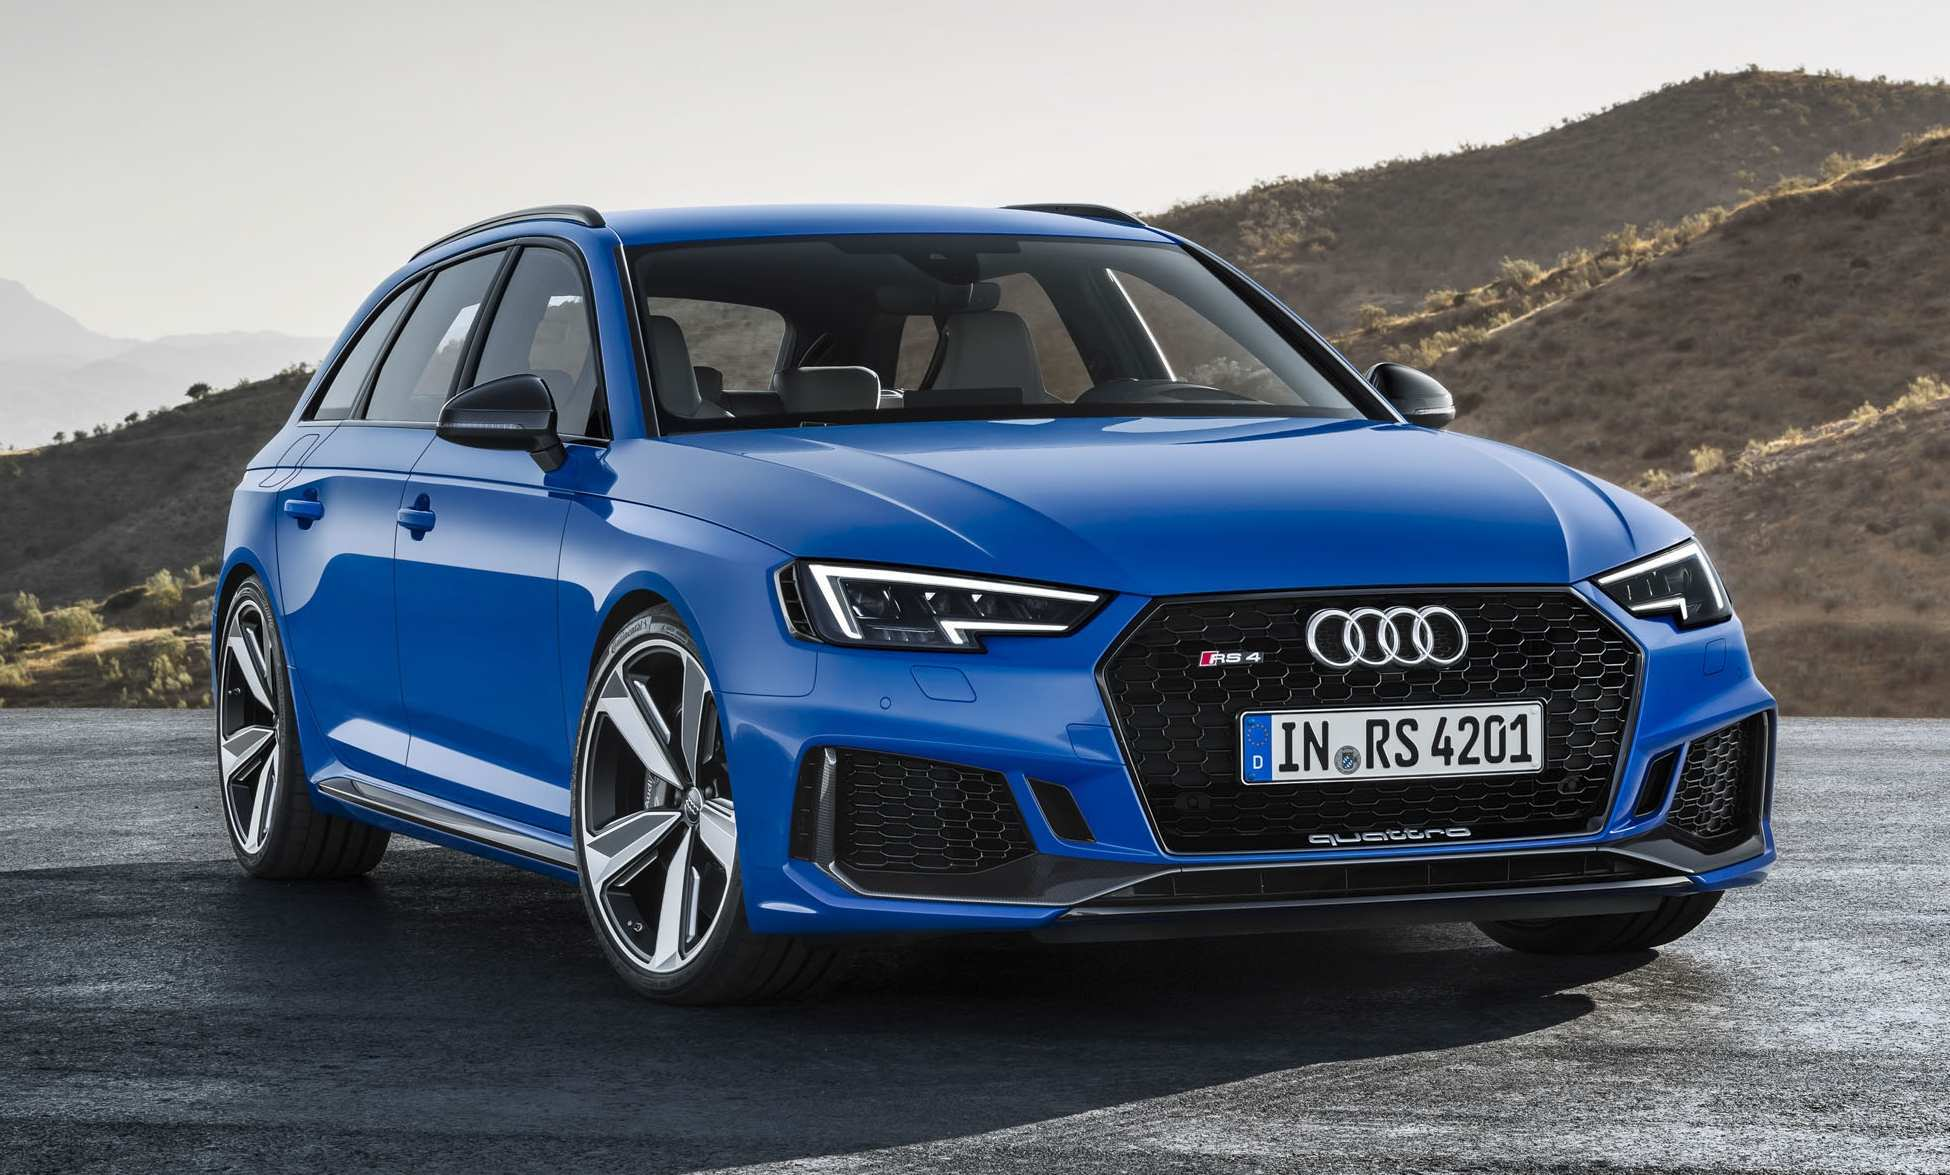 57 Great Audi Rs4 2020 Review for Audi Rs4 2020